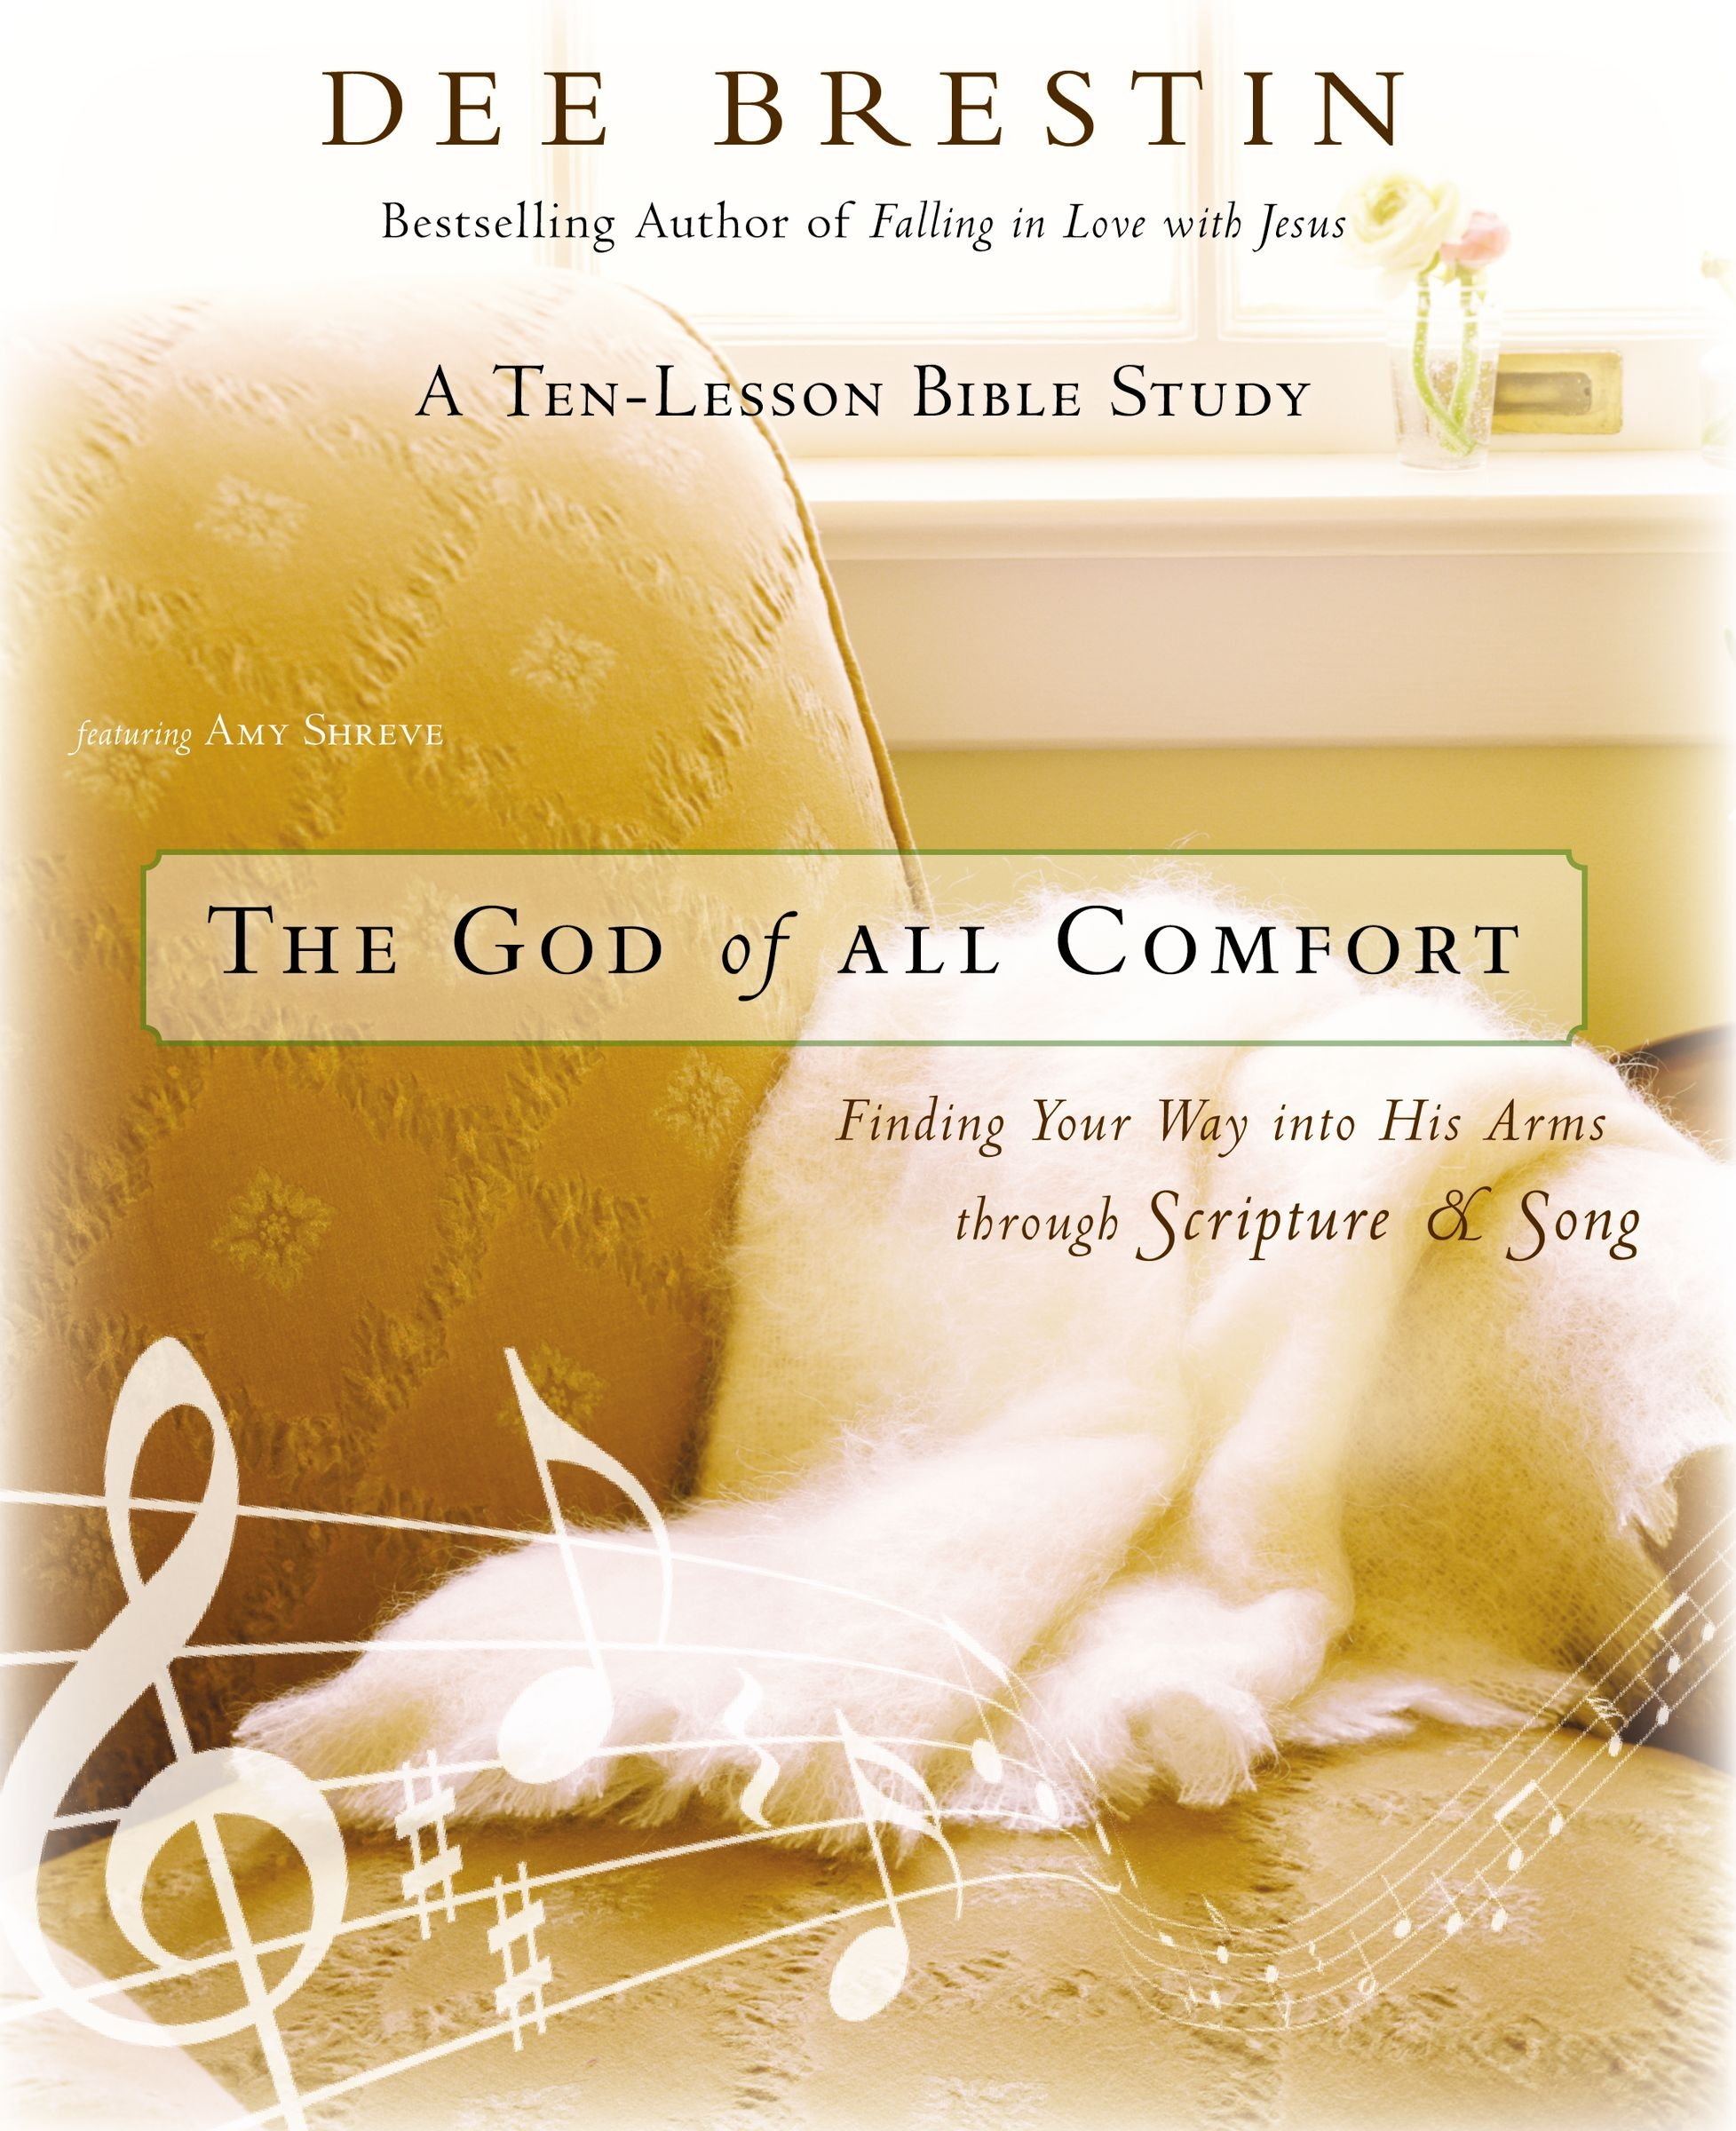 The God of All Comfort Bible Study Guide: Finding Your Way into His Arms through Scripture and Song by Zondervan